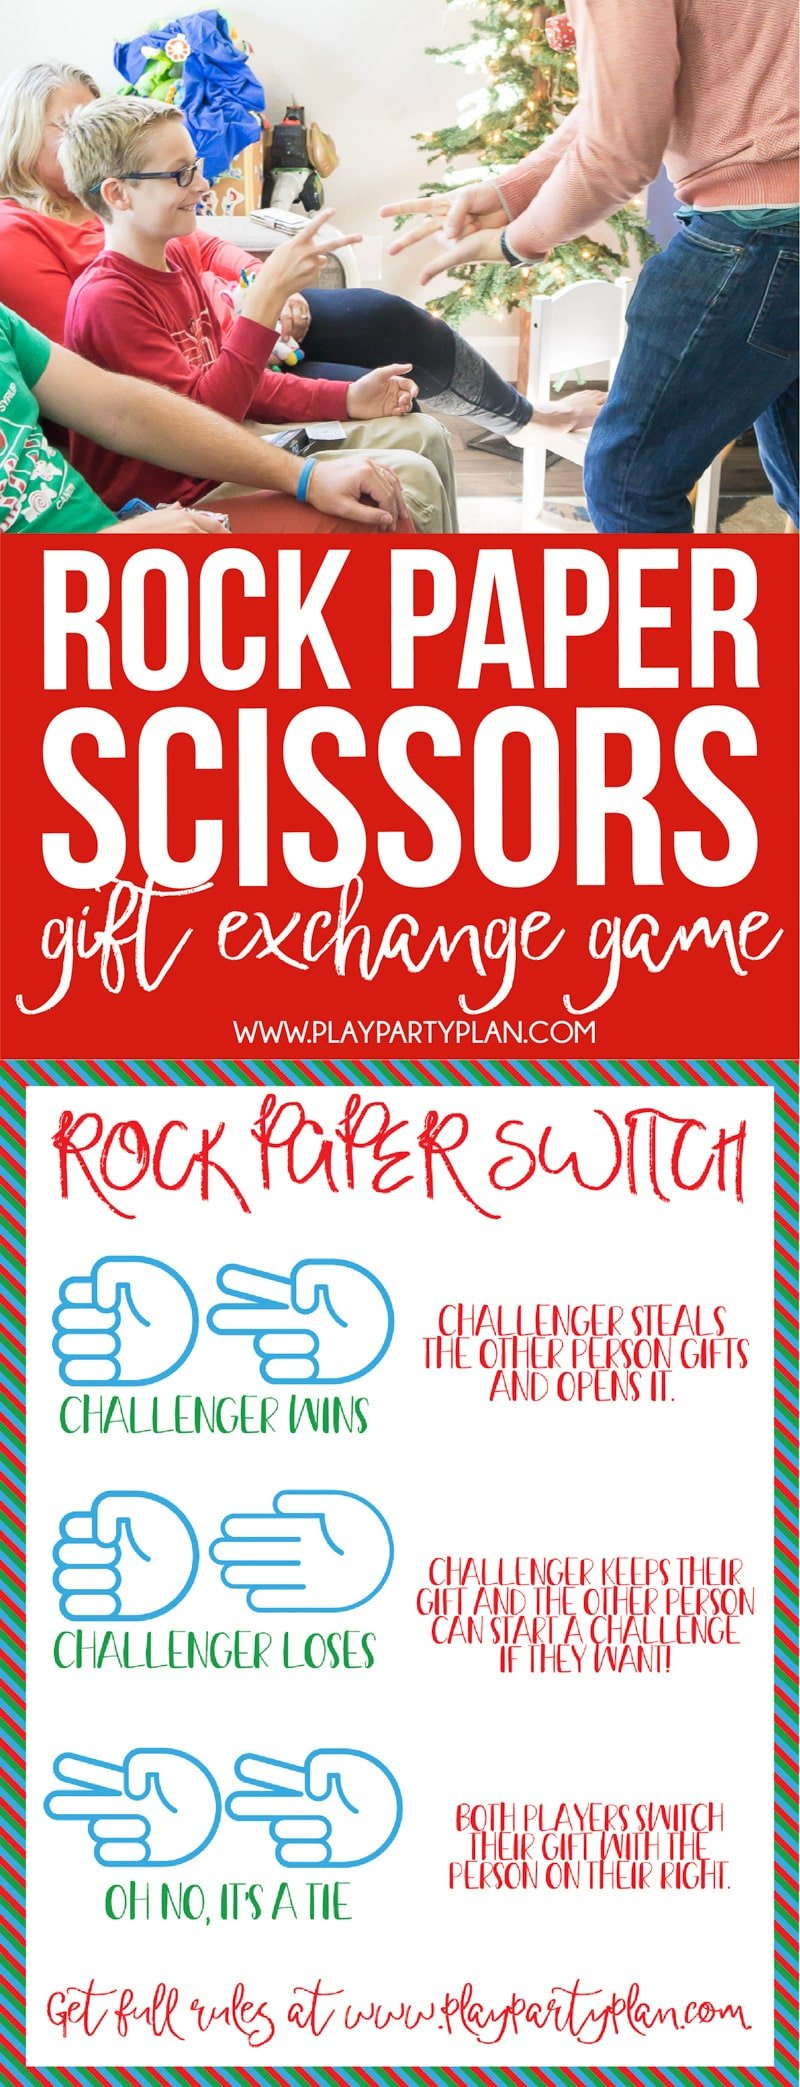 Hilarious Rock Paper Scissors Gift Exchange Game - Play Party Plan